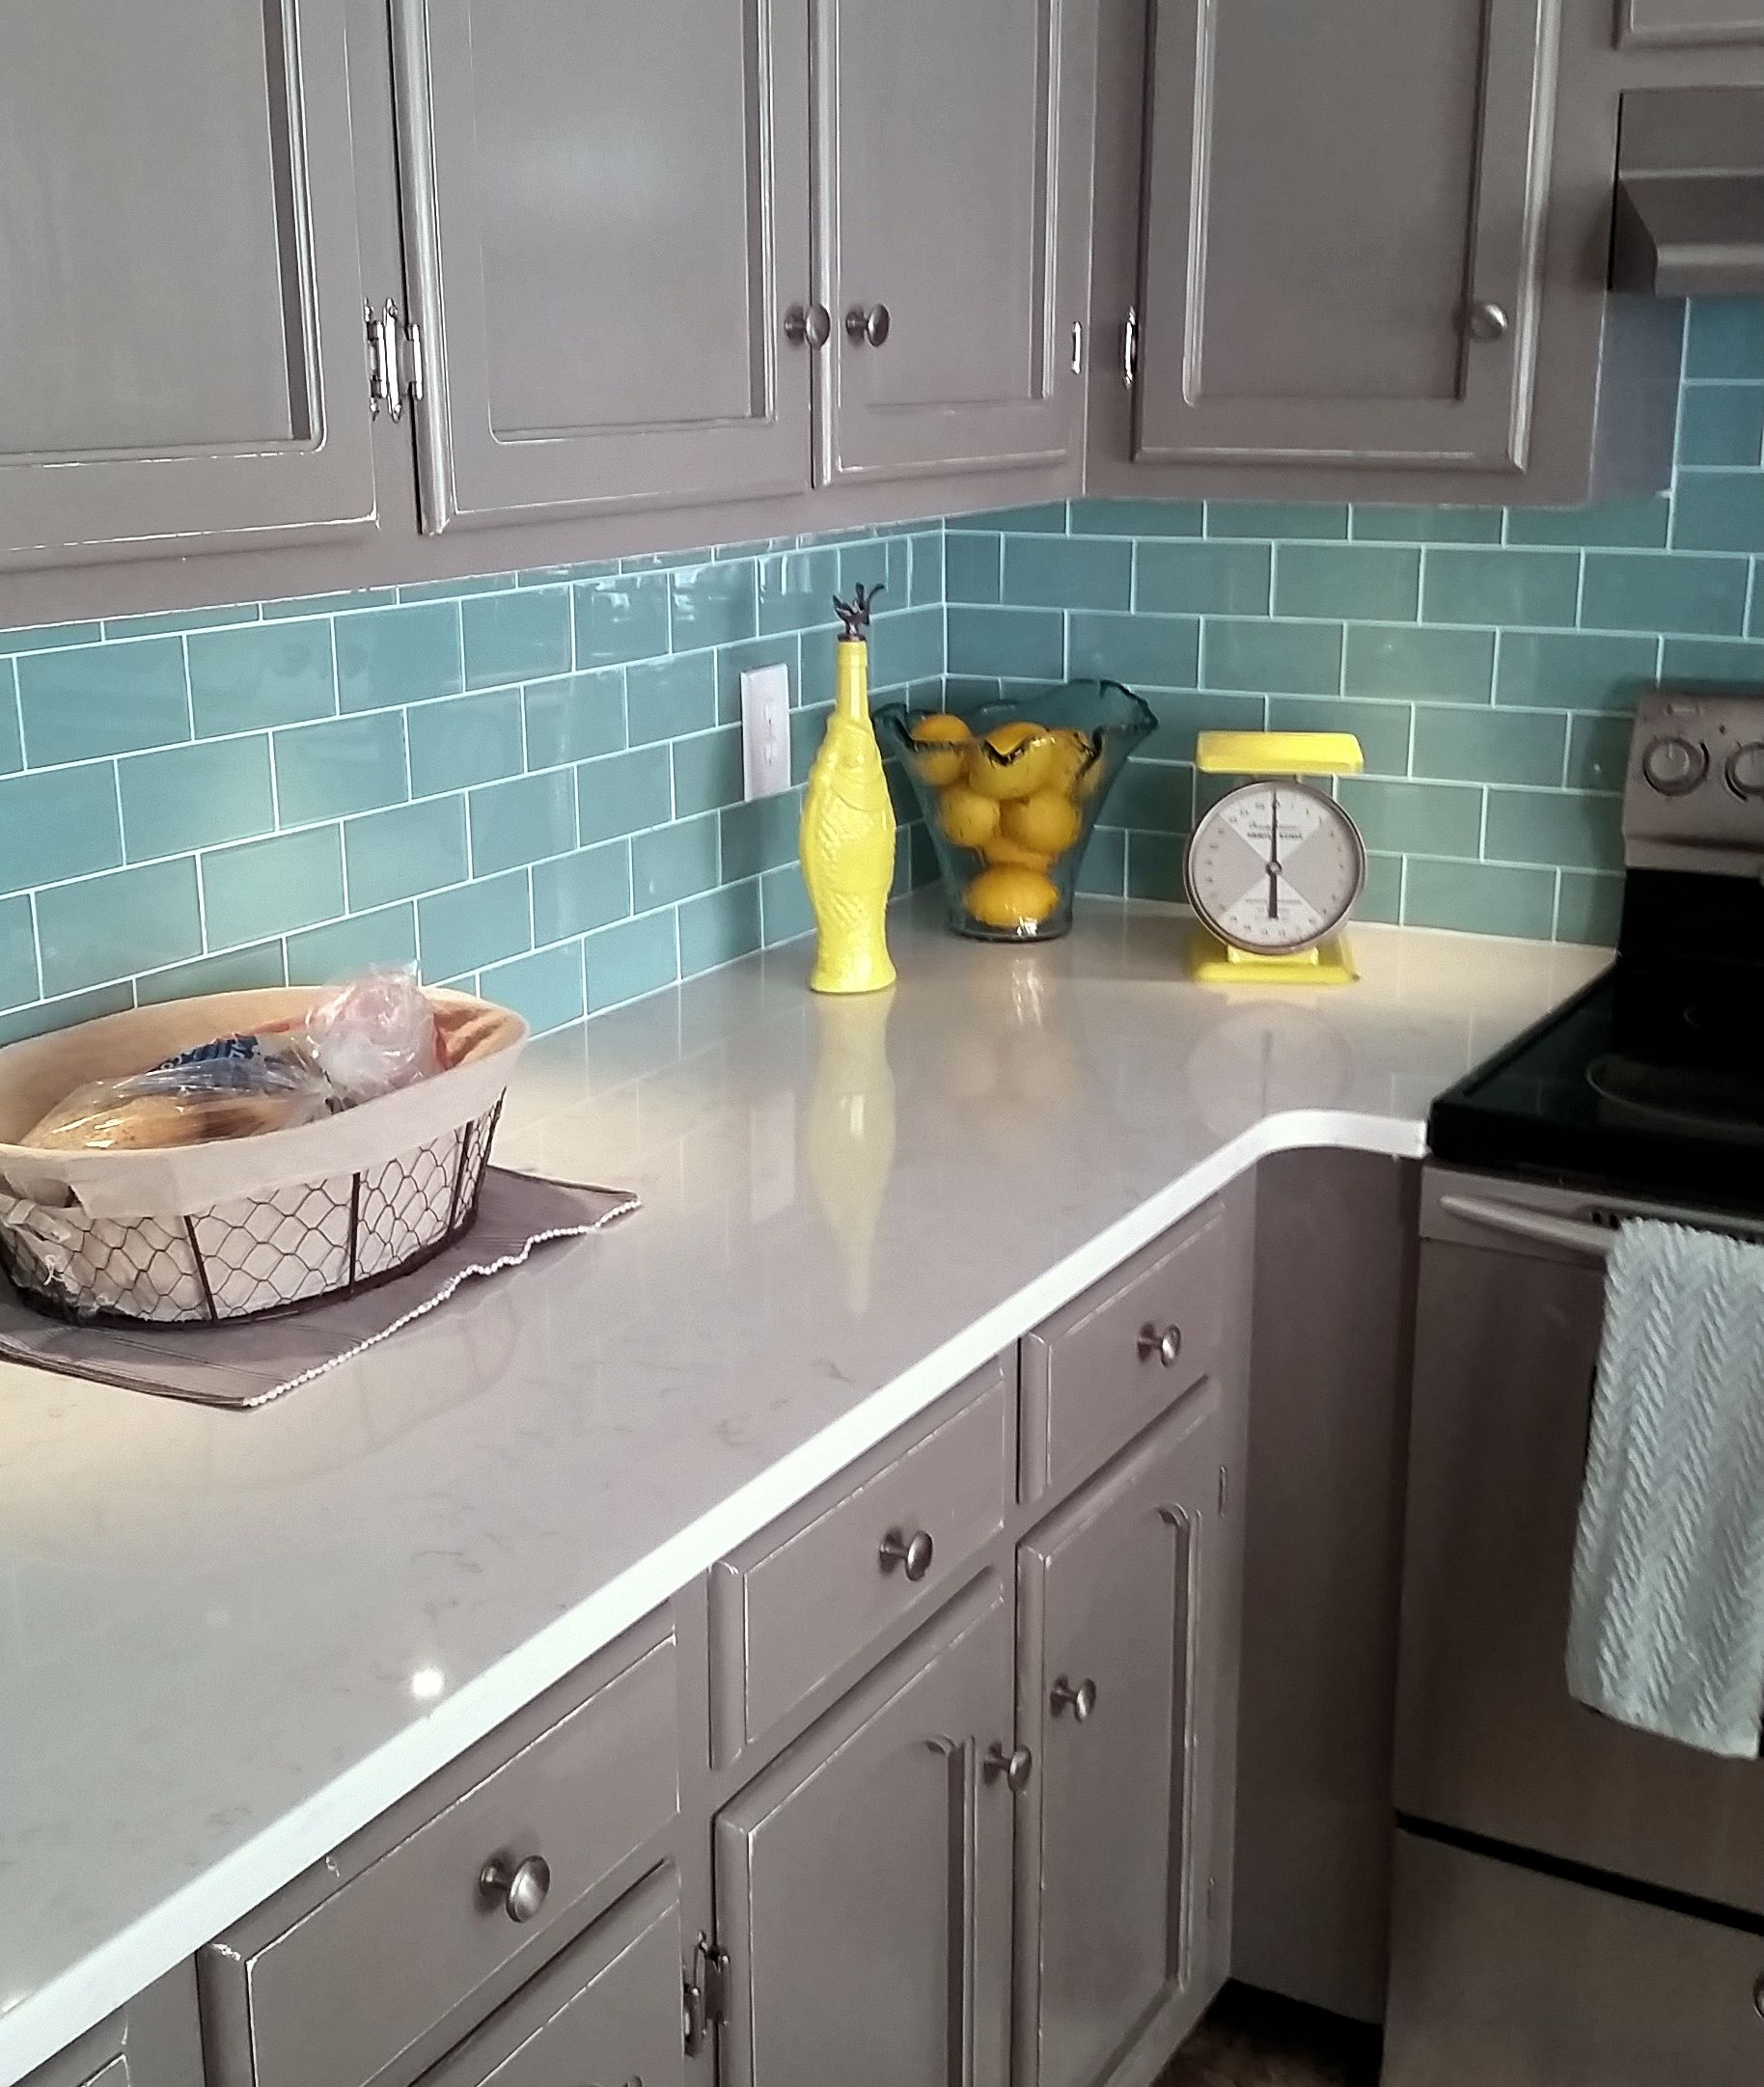 sage green glass subway tile subway tile outlet kitchen i m loving this color combination for a kitchen right now aqua green subway tile backsplash white countertops and gray cabinets